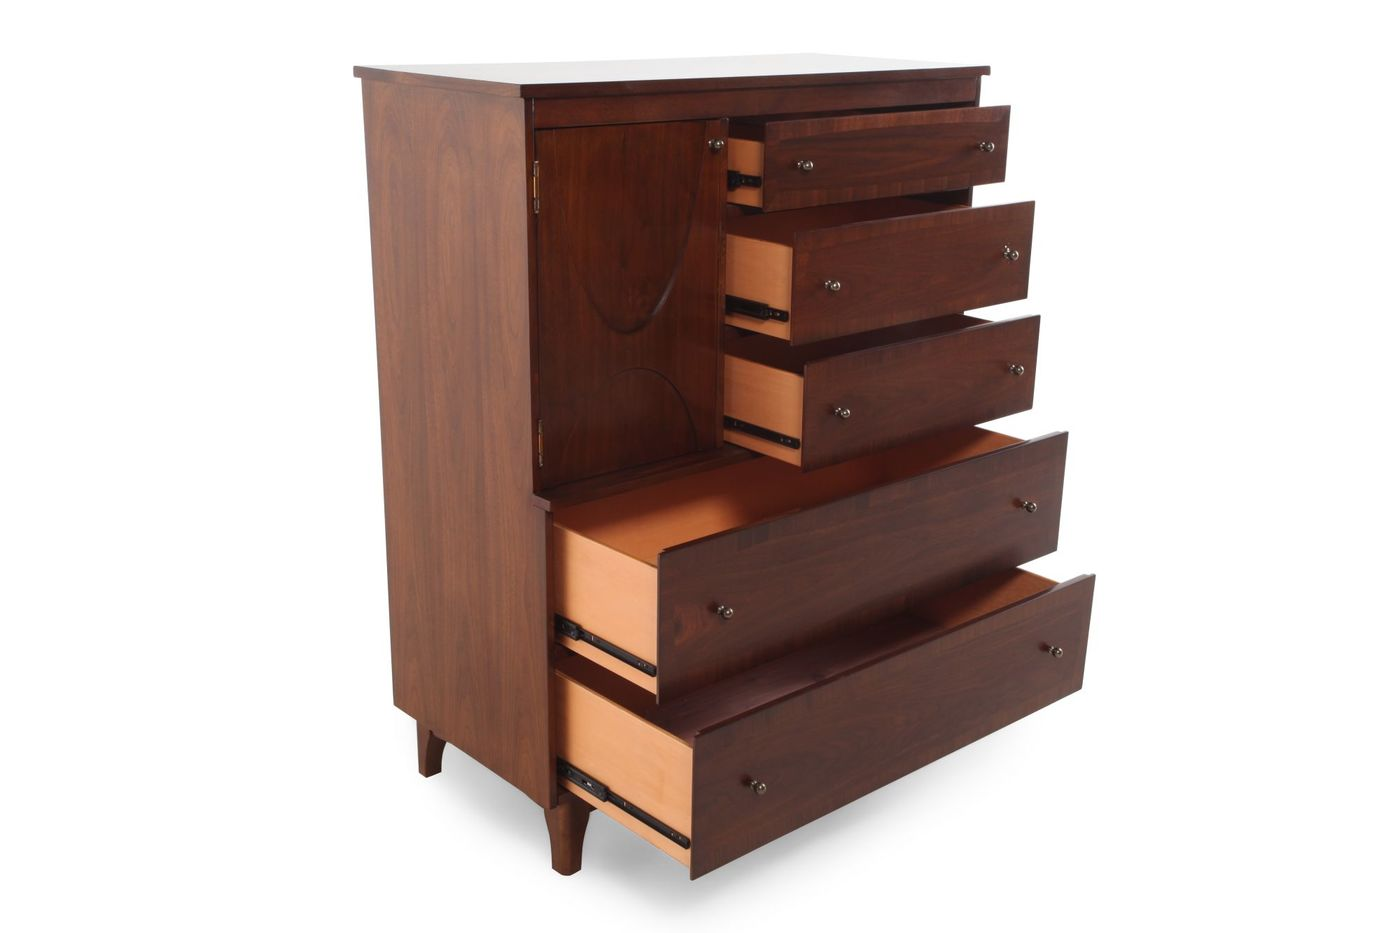 the fantastic favorite winsome wood end table with drawer and shelf contemporary five door chest cognac mathis brothers broy black winter dog house plans very small lamps lift top